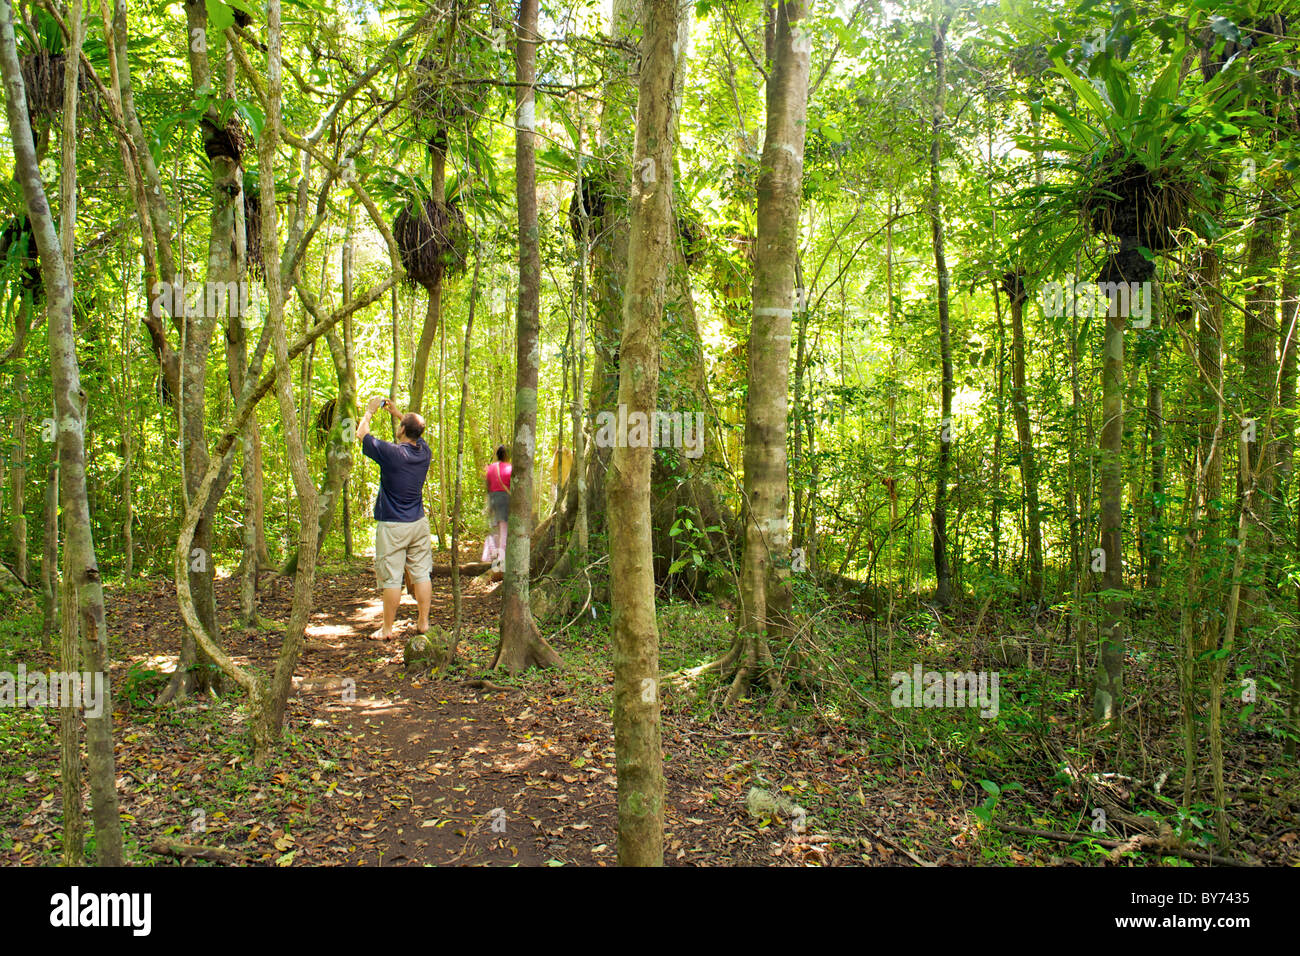 Tourist photographing Palissander and Eucalyptuse trees in Montagne D'Ambre National Park in northern Madagascar. - Stock Image